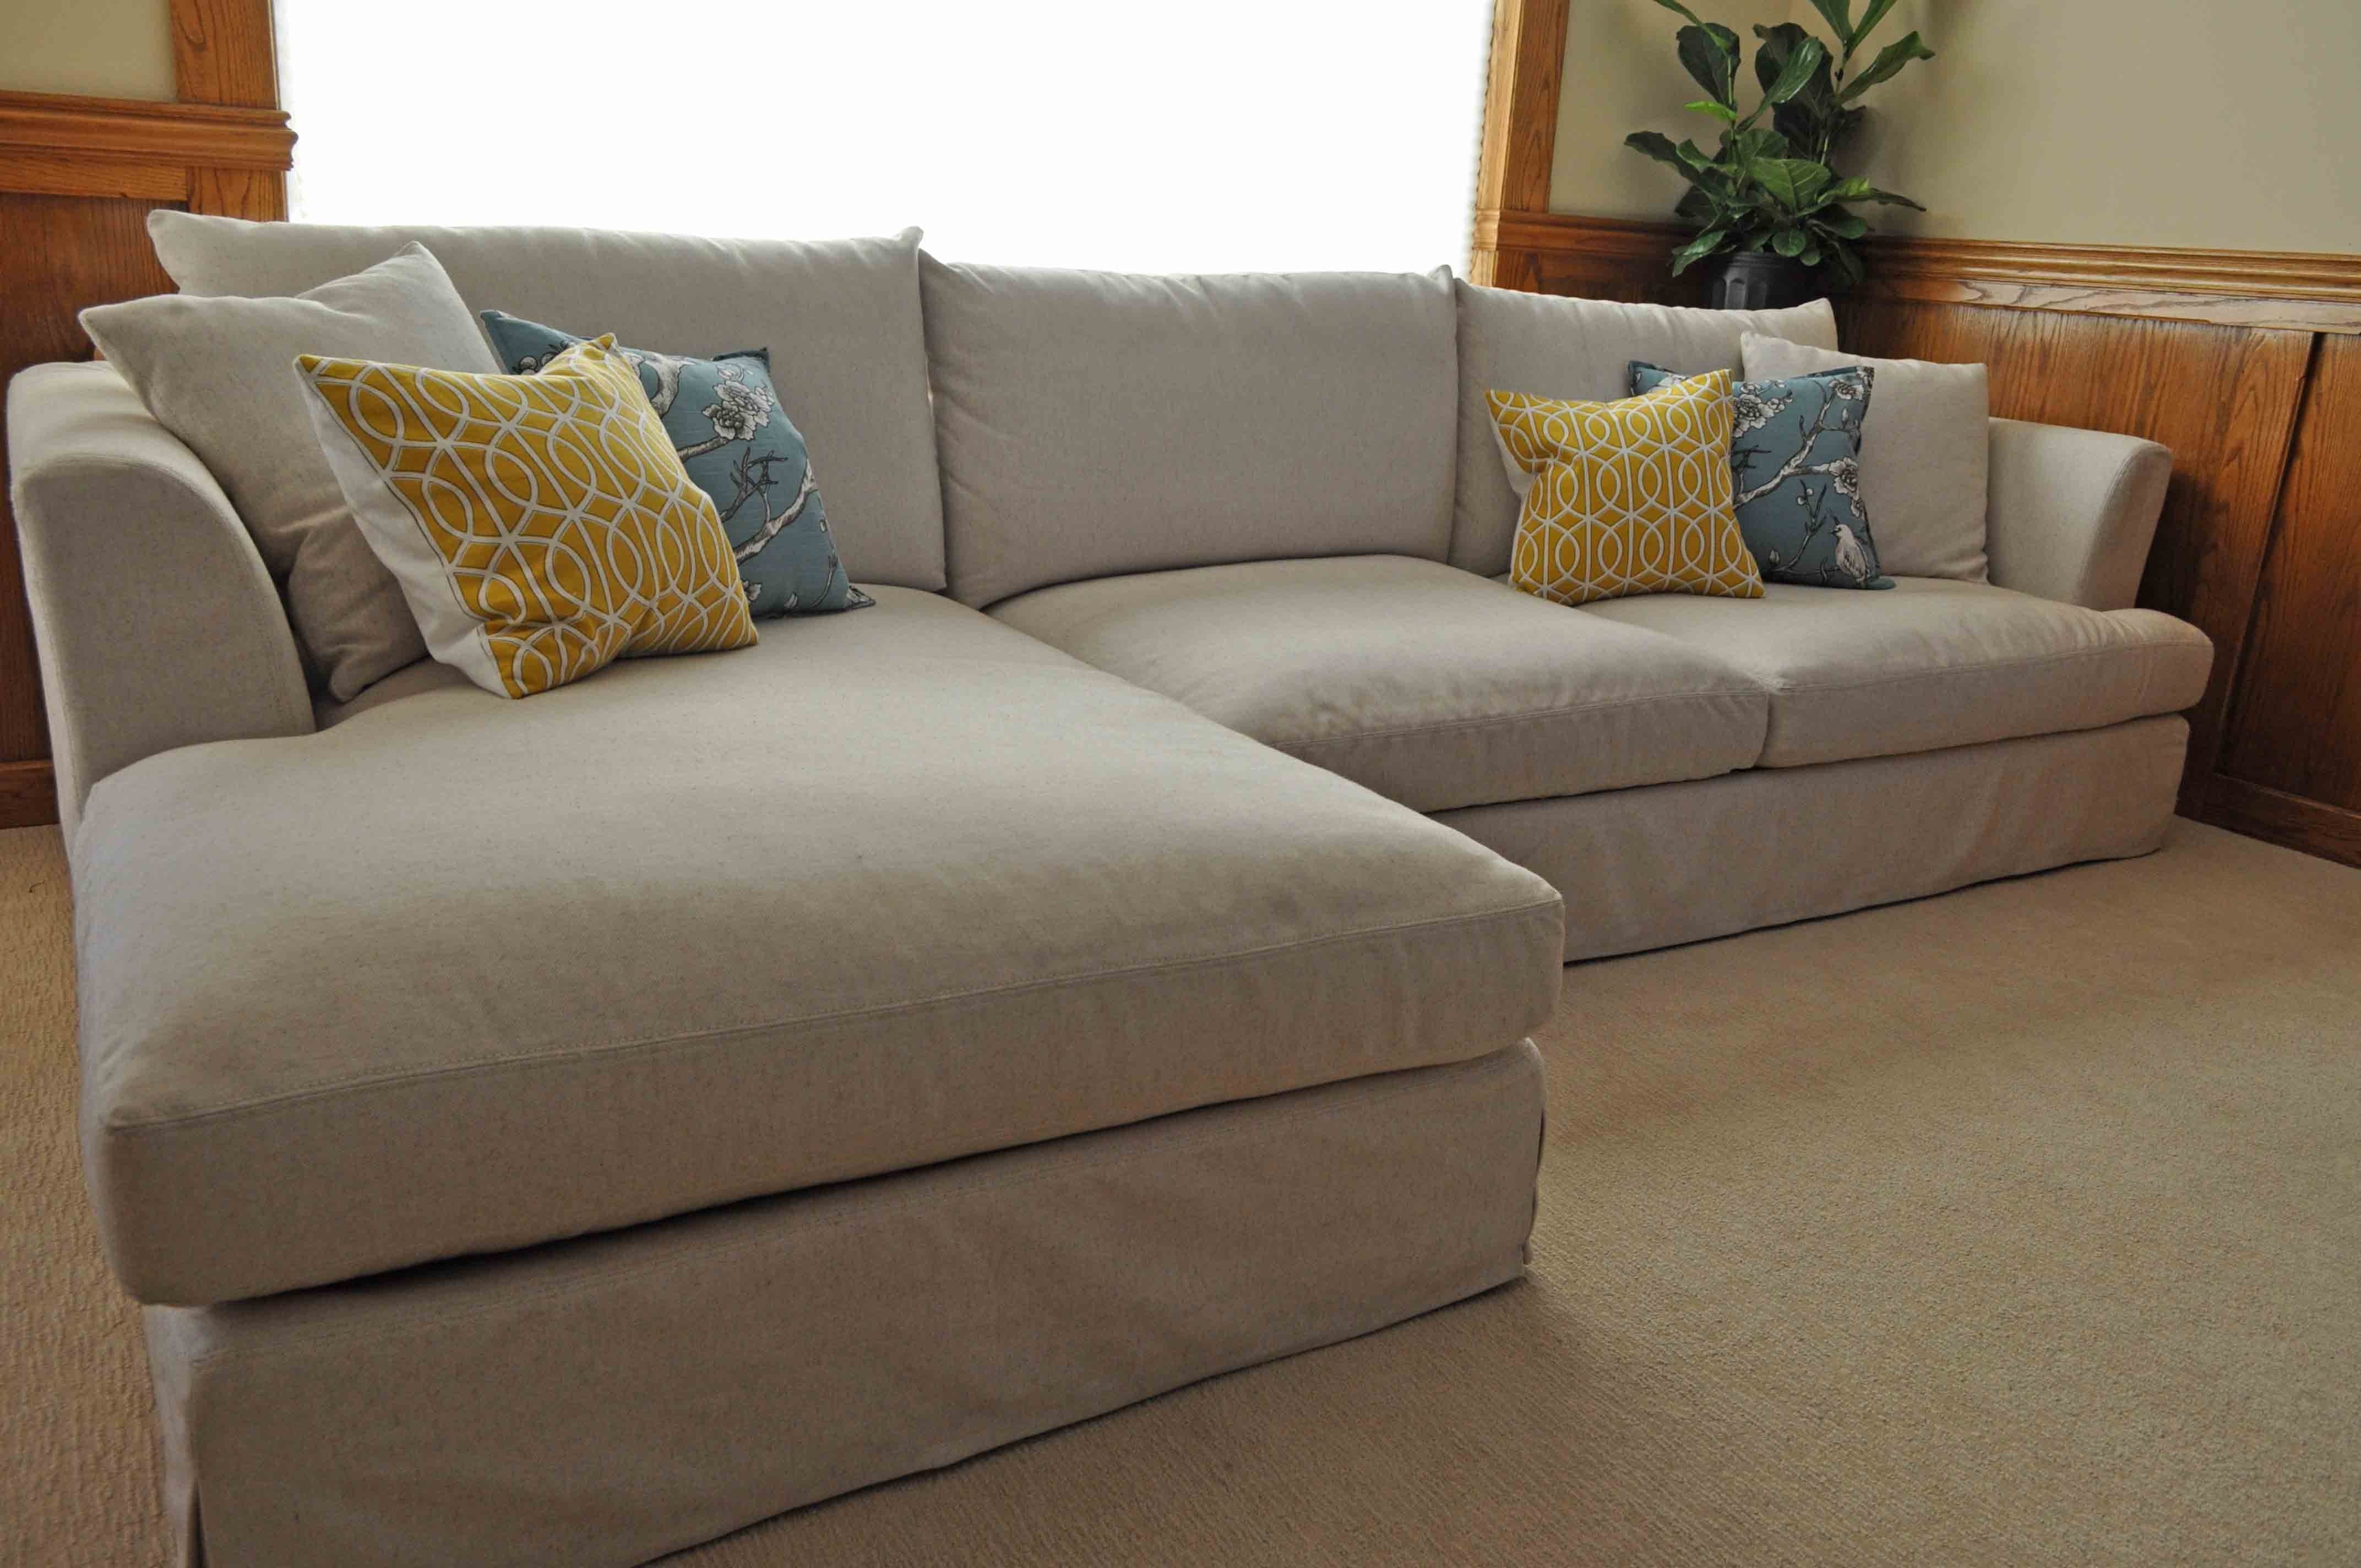 Couch: Ideas Comfy Couches Cozy Couch Inflatable, Big Comfy Inside Well Known Deep Cushion Sofas (View 2 of 15)